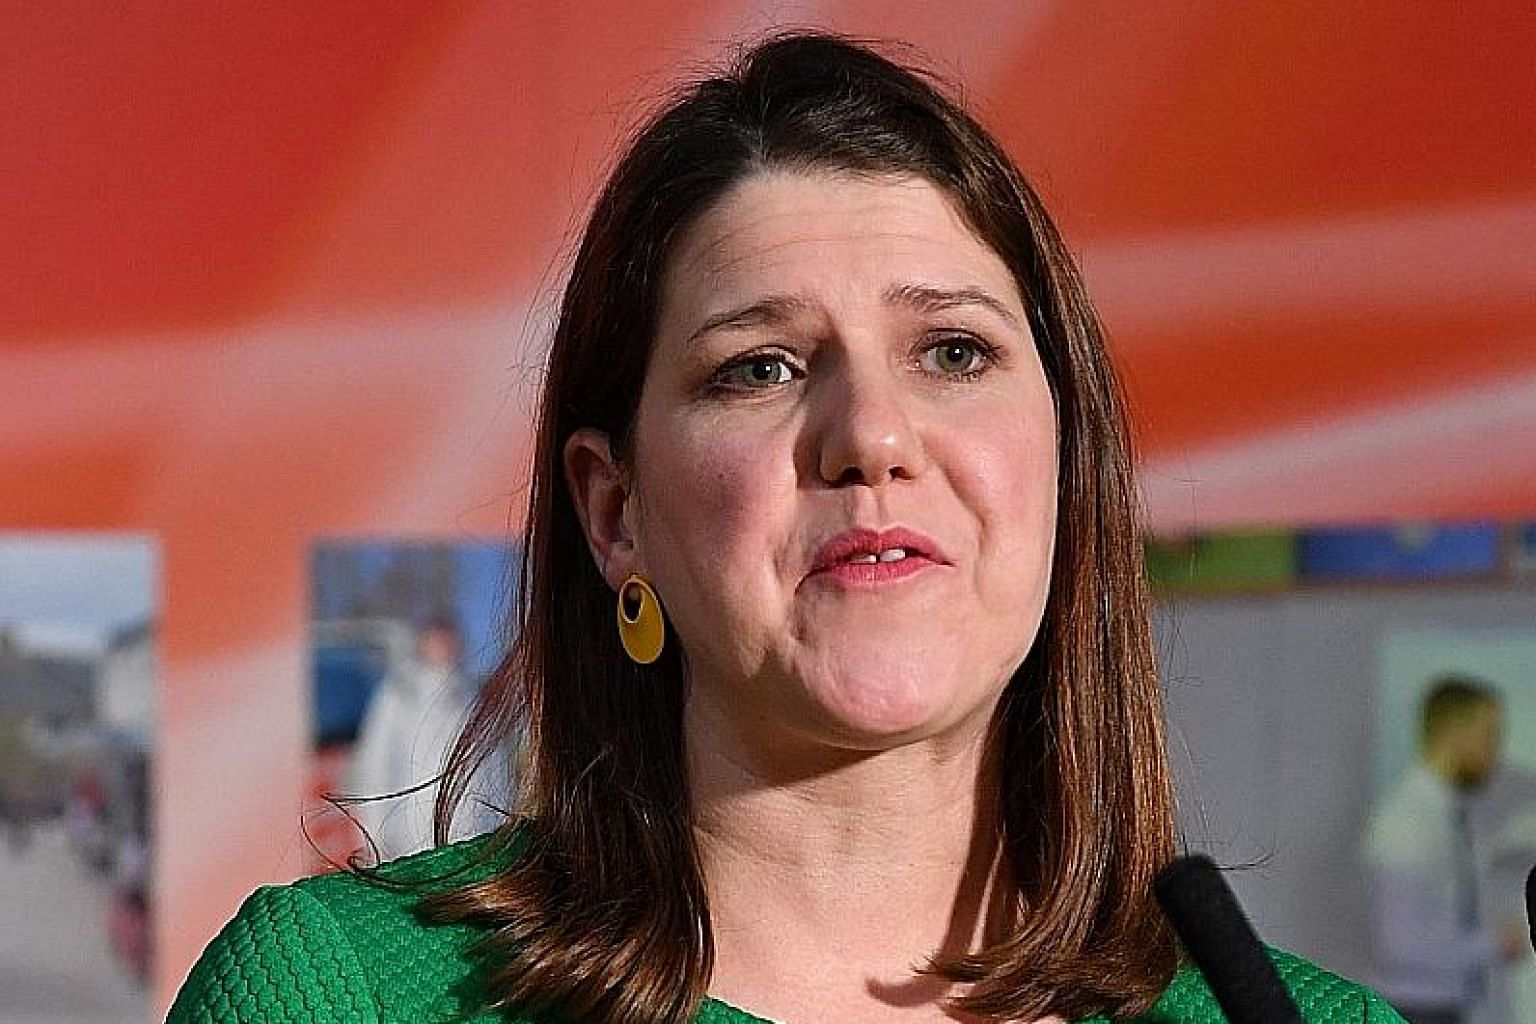 Liberal Democrat leader Jo Swinson speaking after losing her seat in East Dunbartonshire, at the counting centre in Bishopbriggs, north of Glasgow, yesterday. PHOTO: AGENCE FRANCE-PRESSE